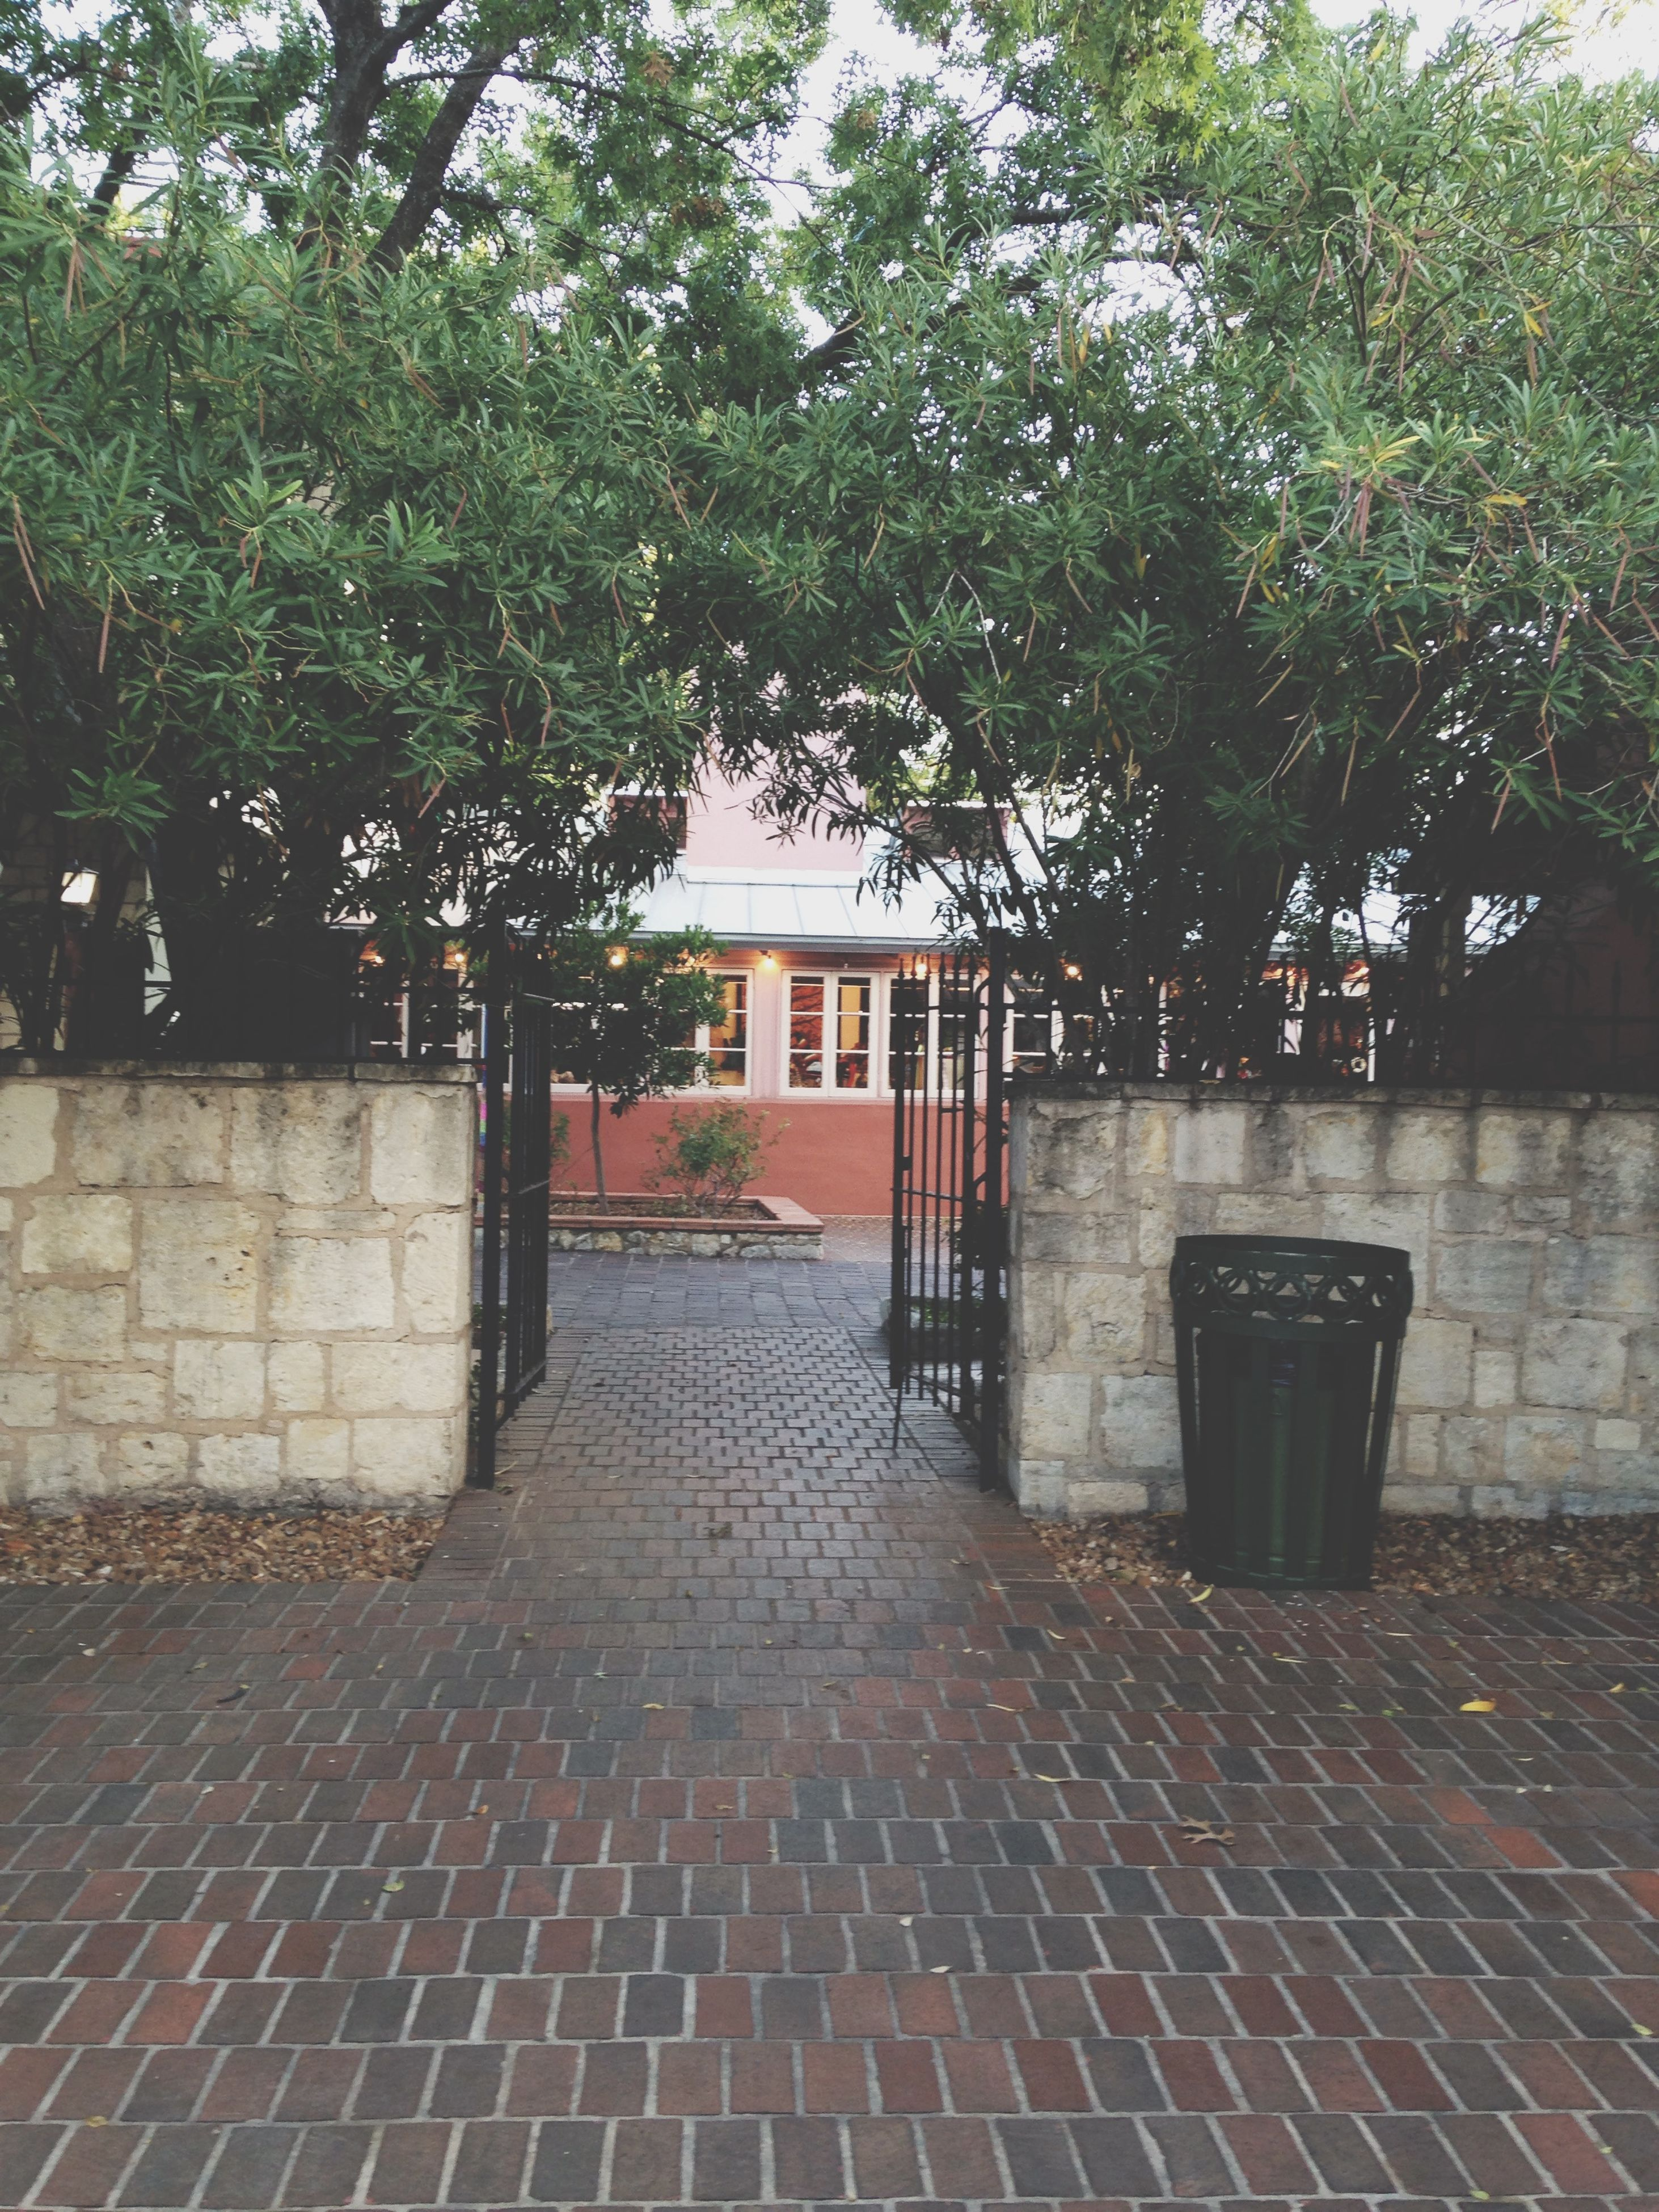 tree, architecture, built structure, building exterior, the way forward, footpath, cobblestone, empty, sidewalk, walkway, house, street, paving stone, growth, absence, day, outdoors, pathway, sunlight, wall - building feature